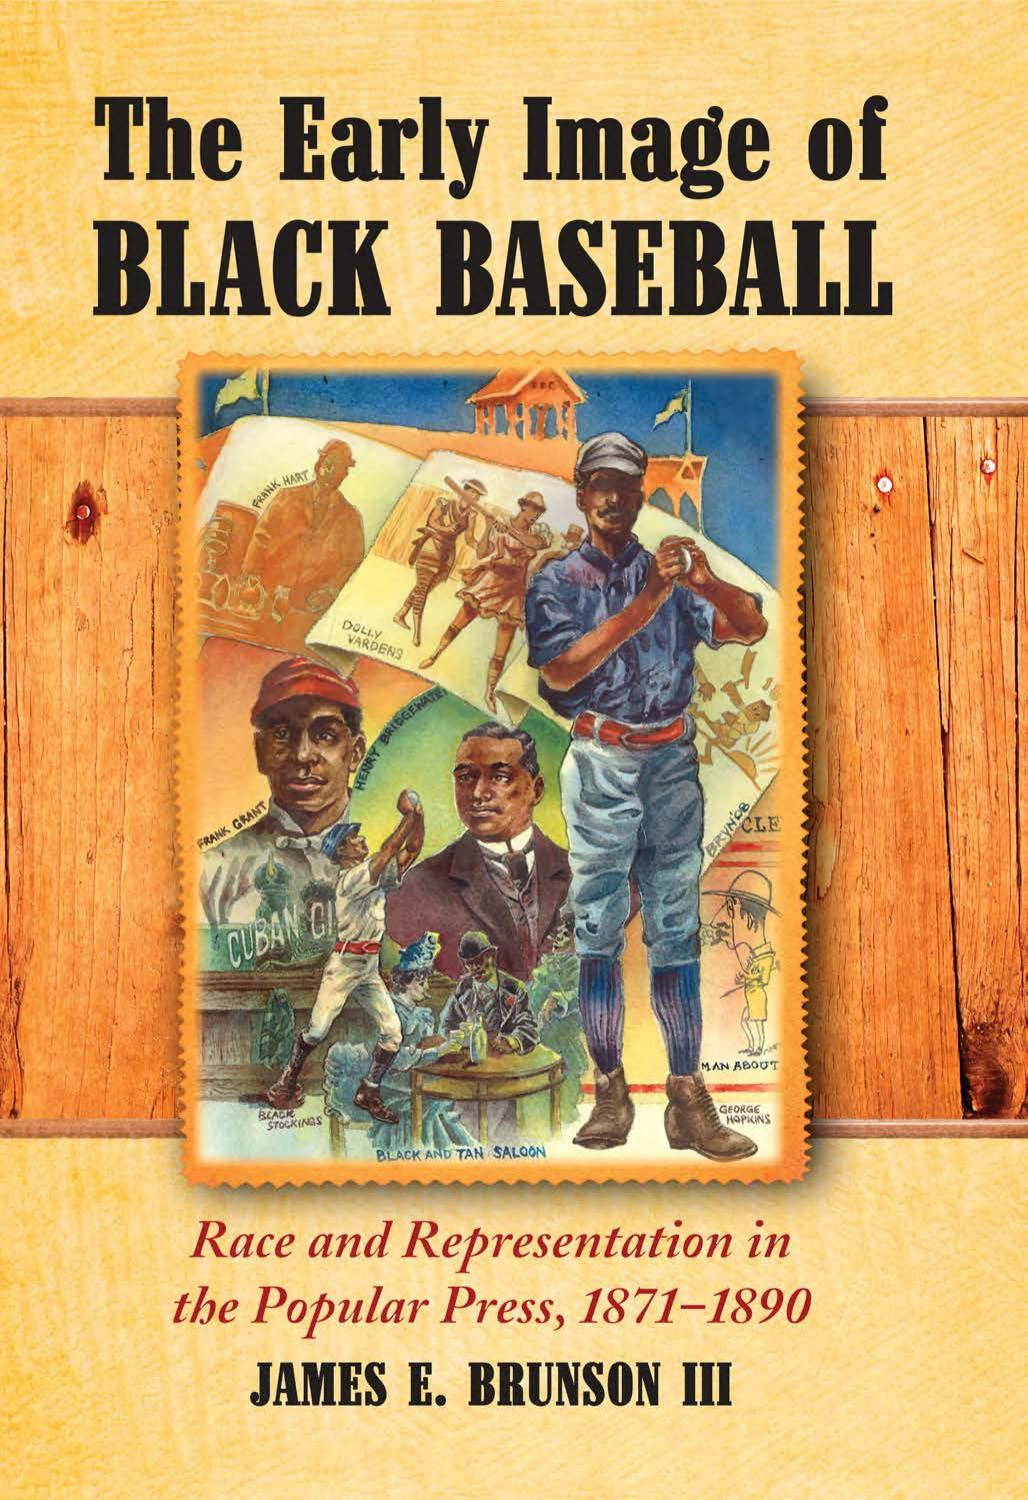 The Early Image of Black Baseball: Race and Representation in the Popular Press, 1871-1890